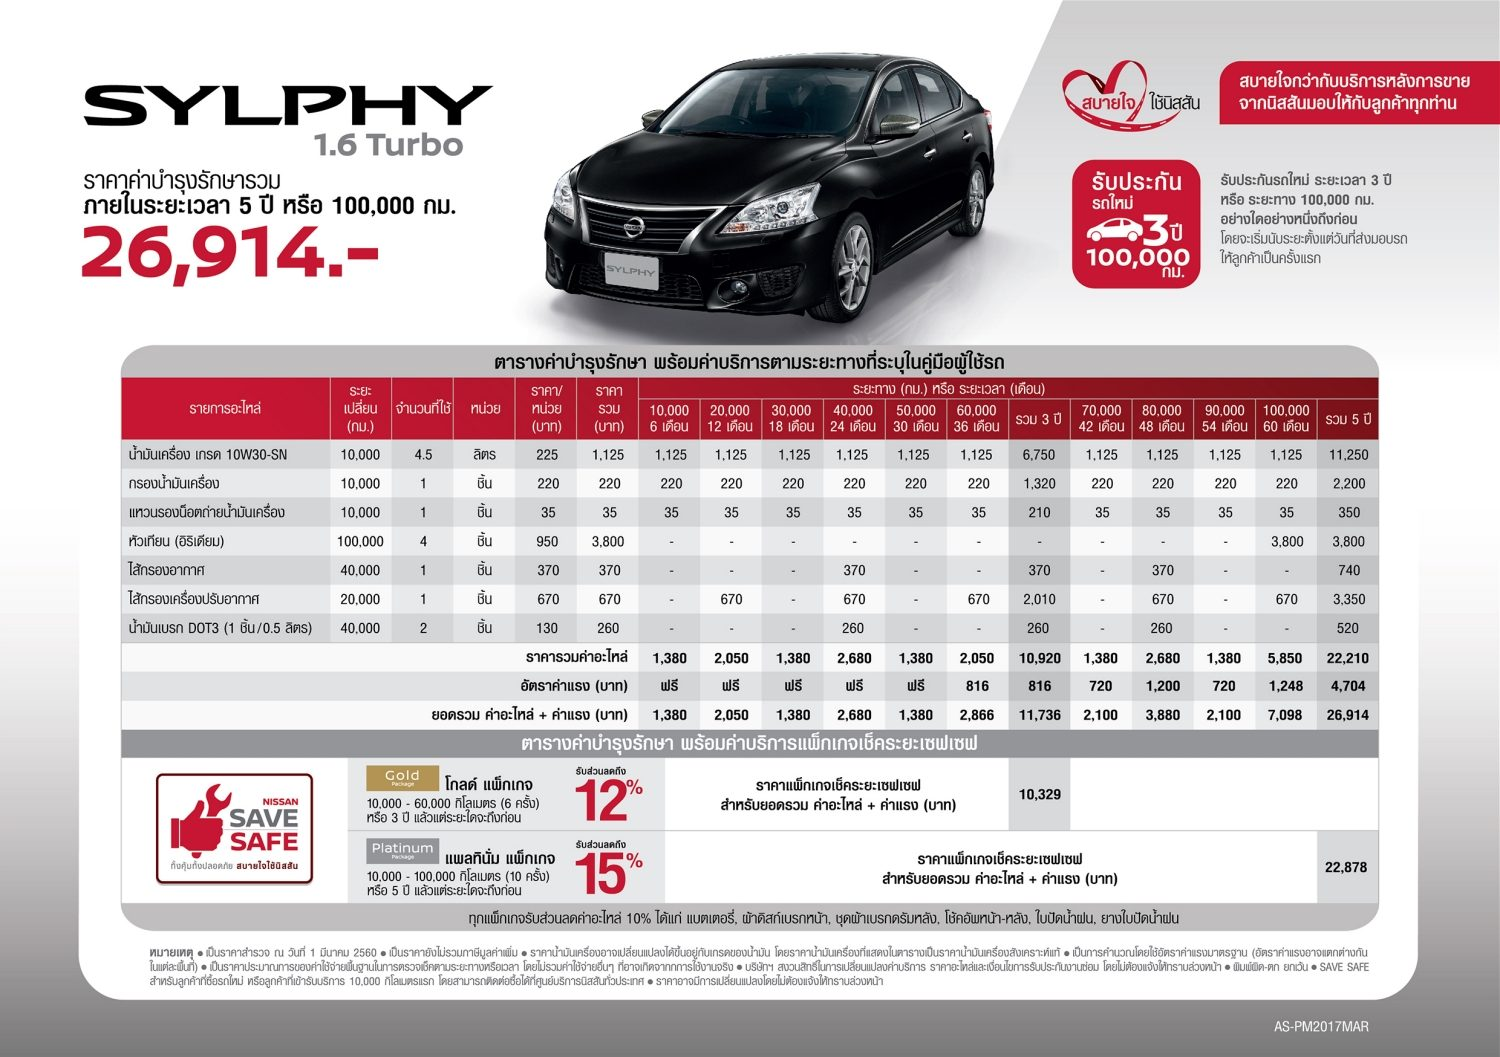 Sylphy Maintenance Cost